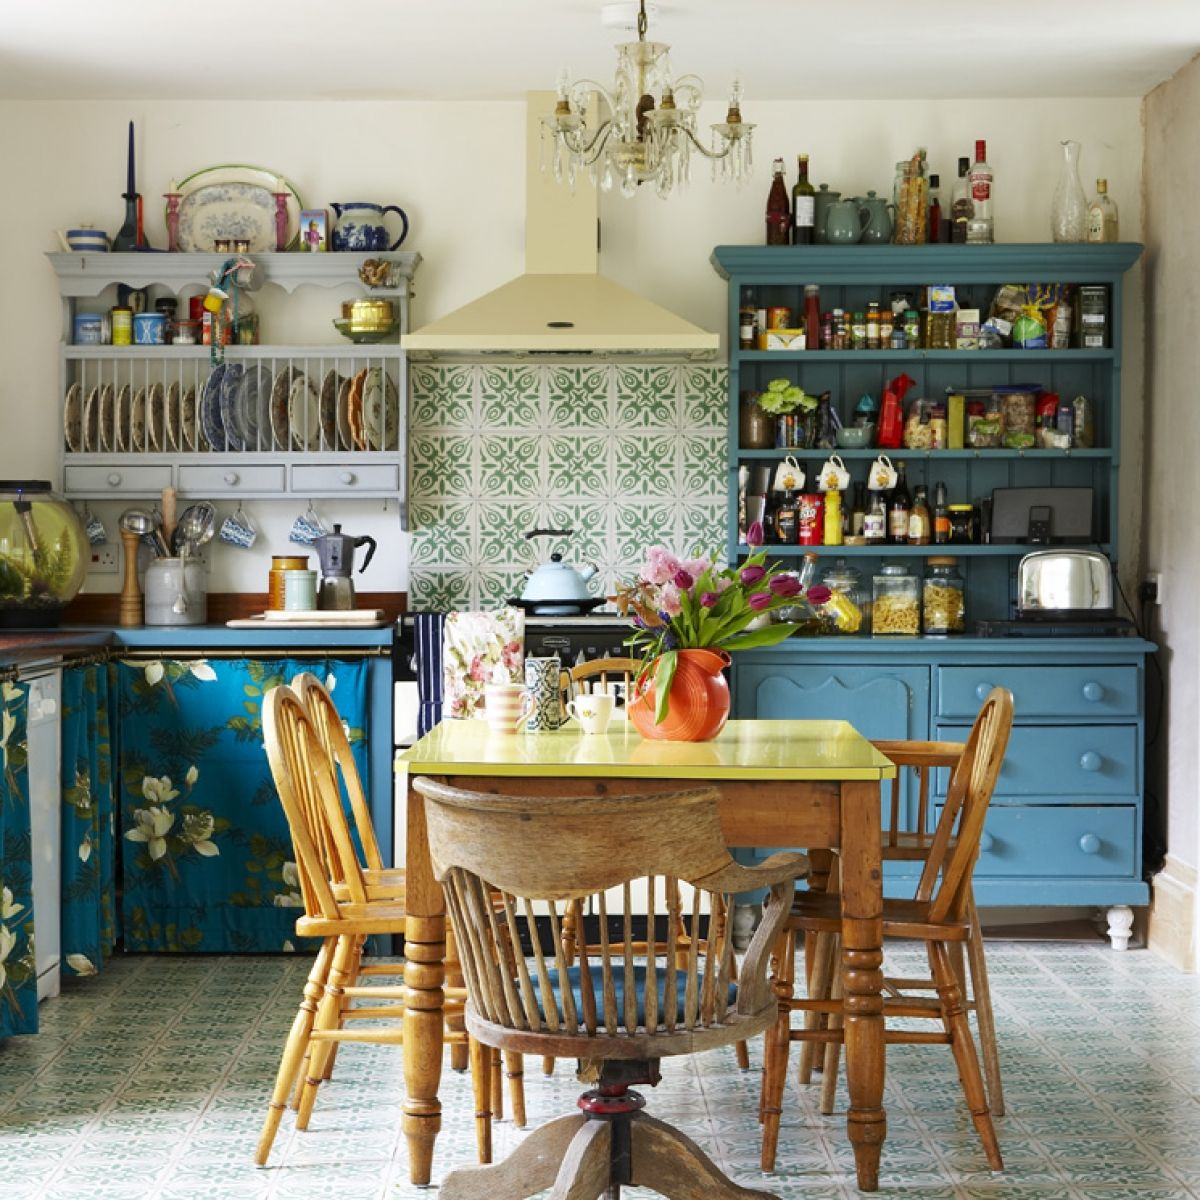 9 Stylish Vintage Kitchen Style With Timeless Charm  Interior